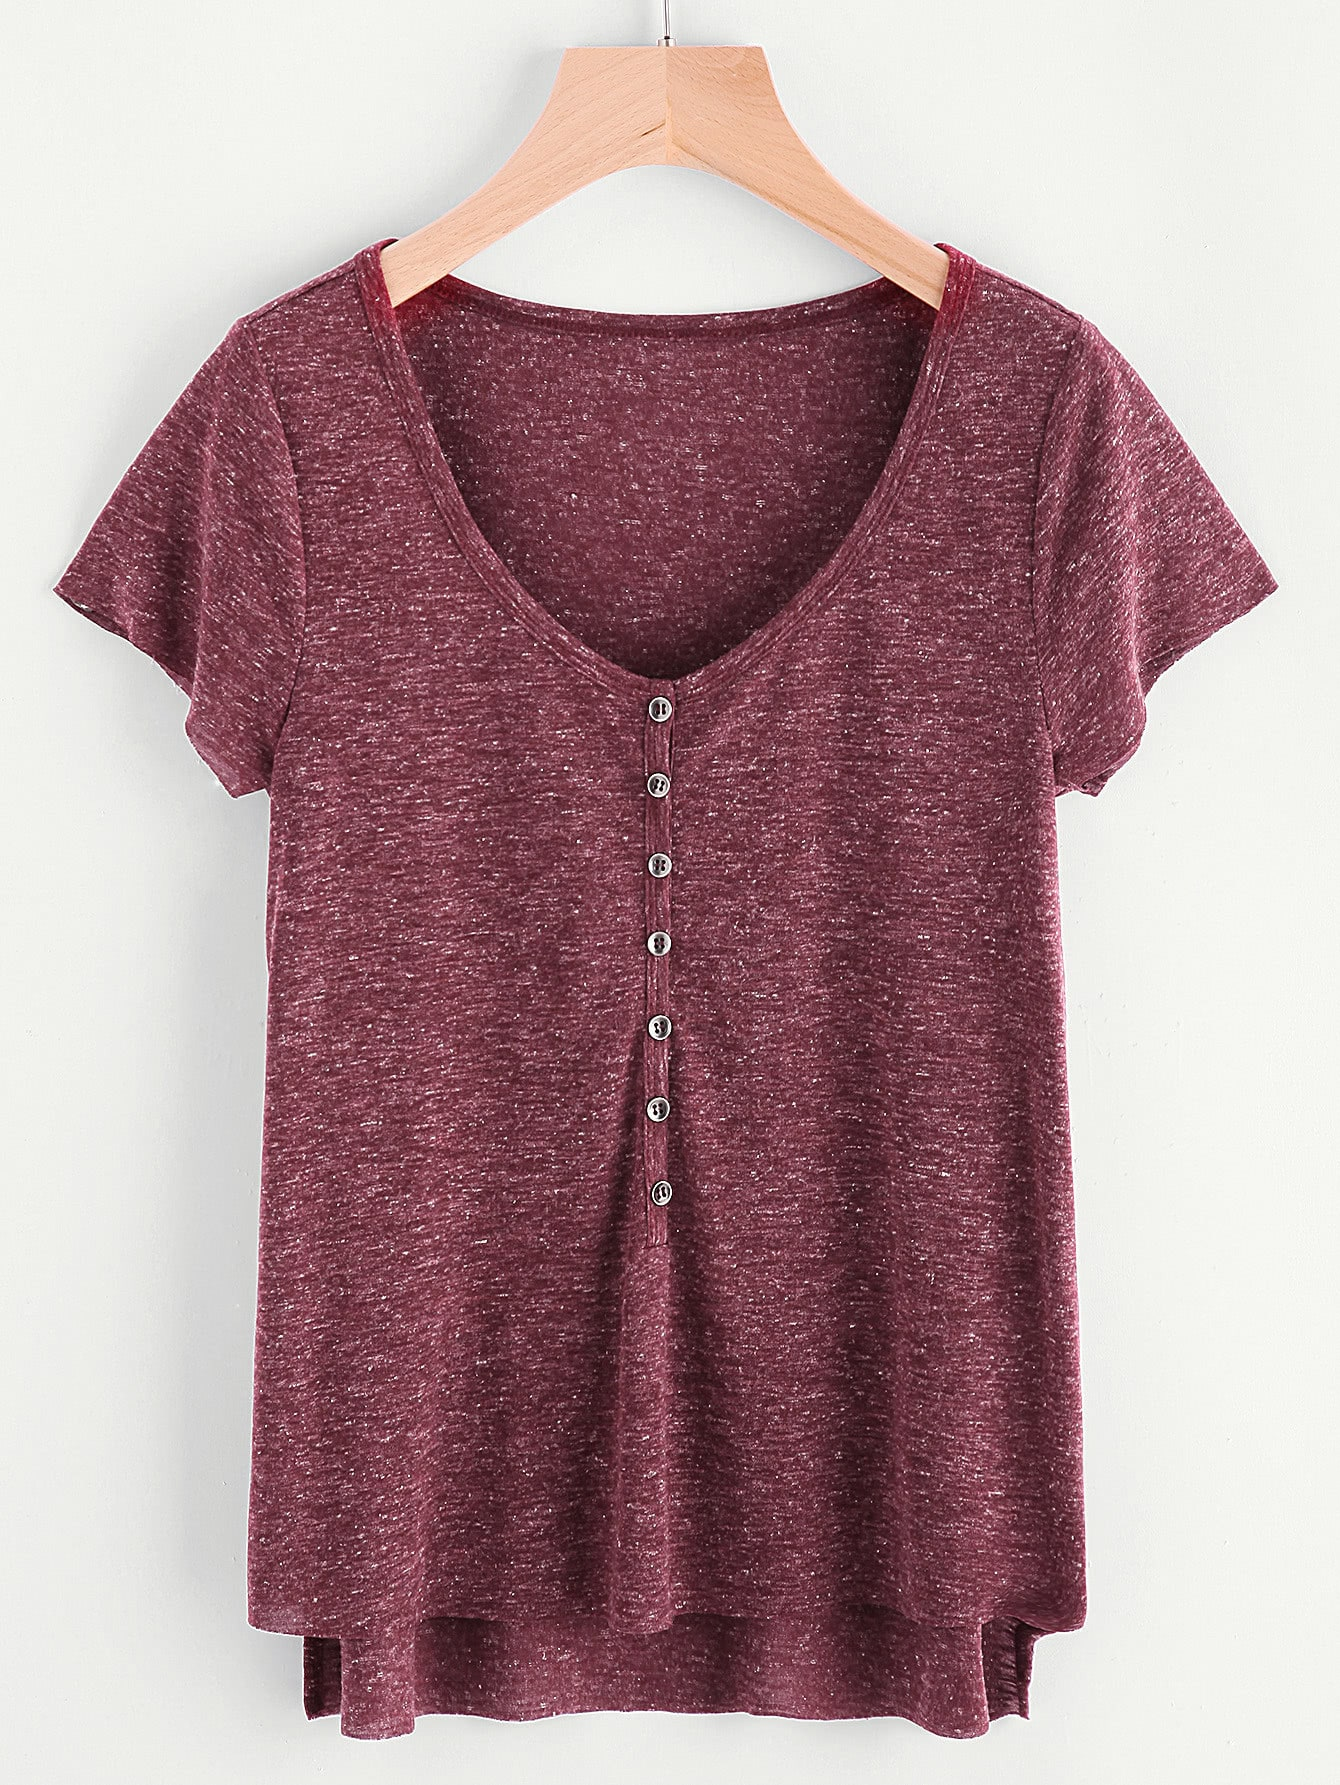 Marled Knit Button Front Staggered Hem T-shirt tee170502701